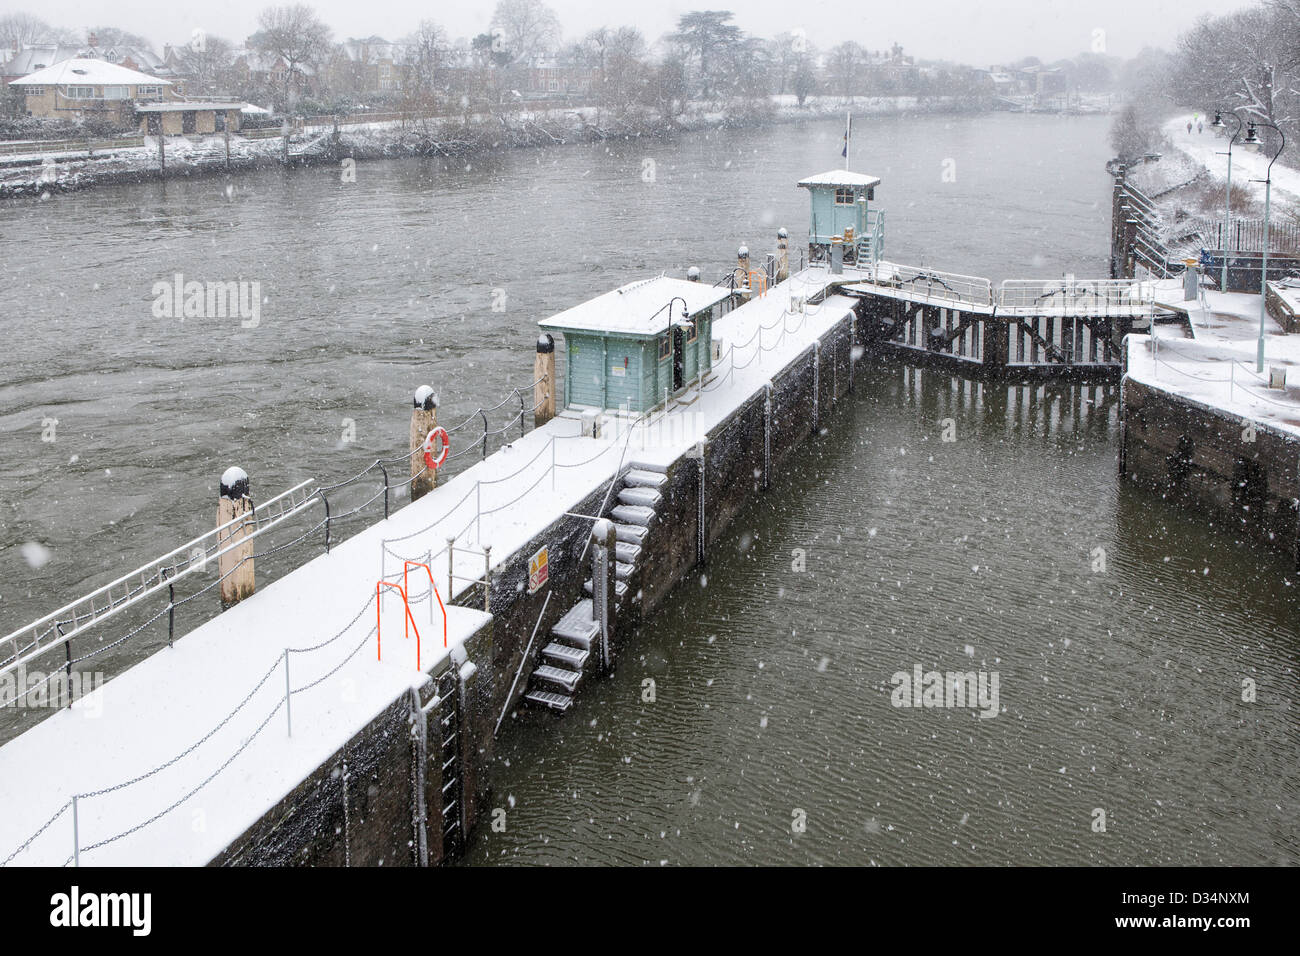 Richmond Lock and weir controls water levels of tidal river - Snow covered lock in Winter - River Thames, Richmond Stock Photo